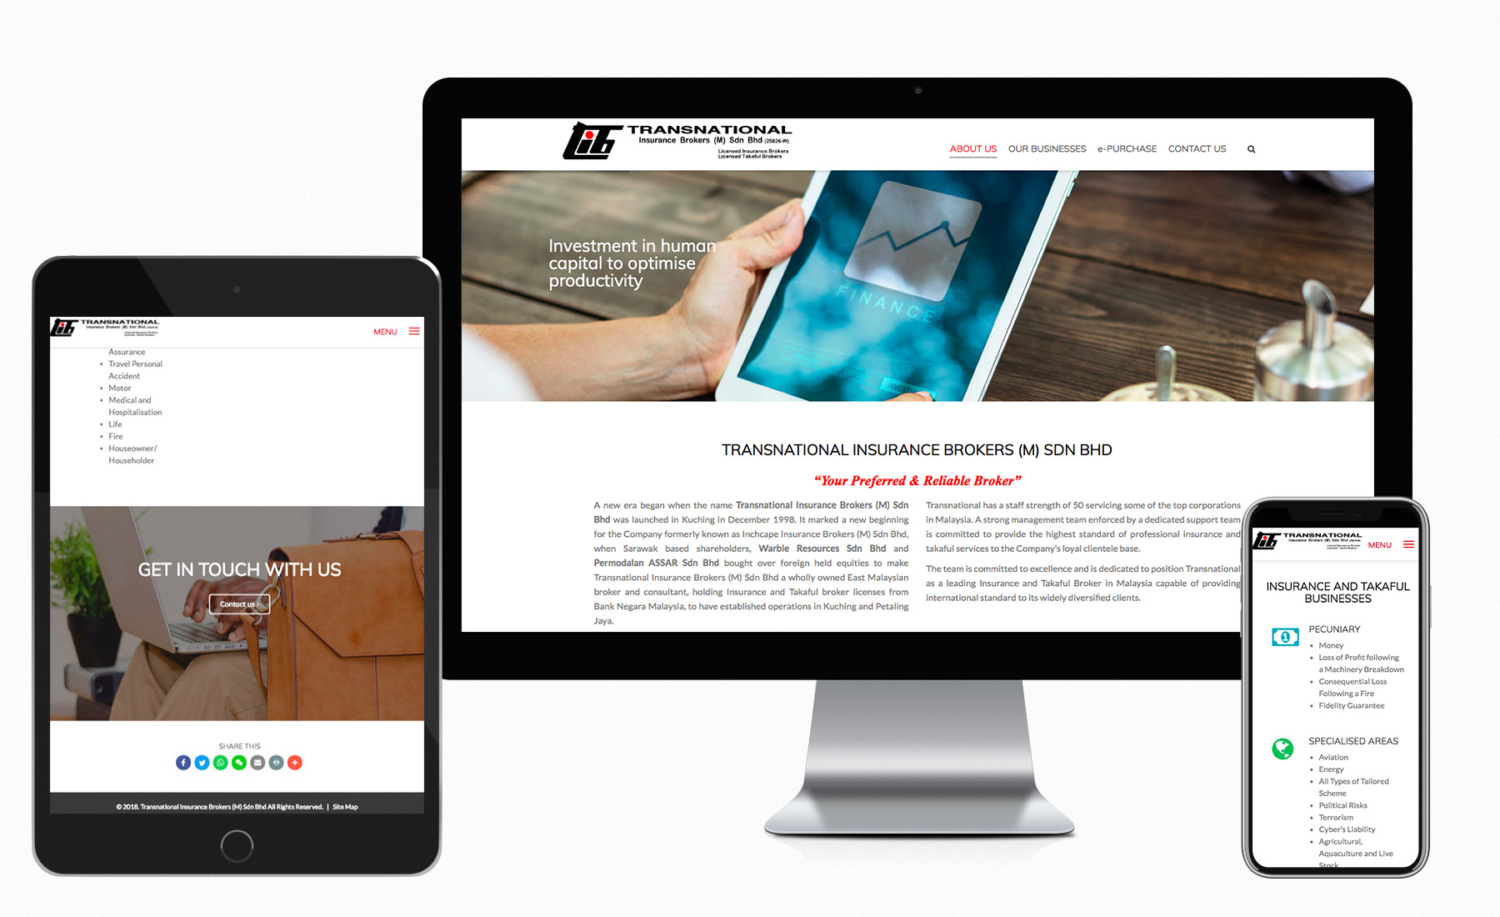 Transnational Insurance Brokers (M) Sdn Bhd website design and built